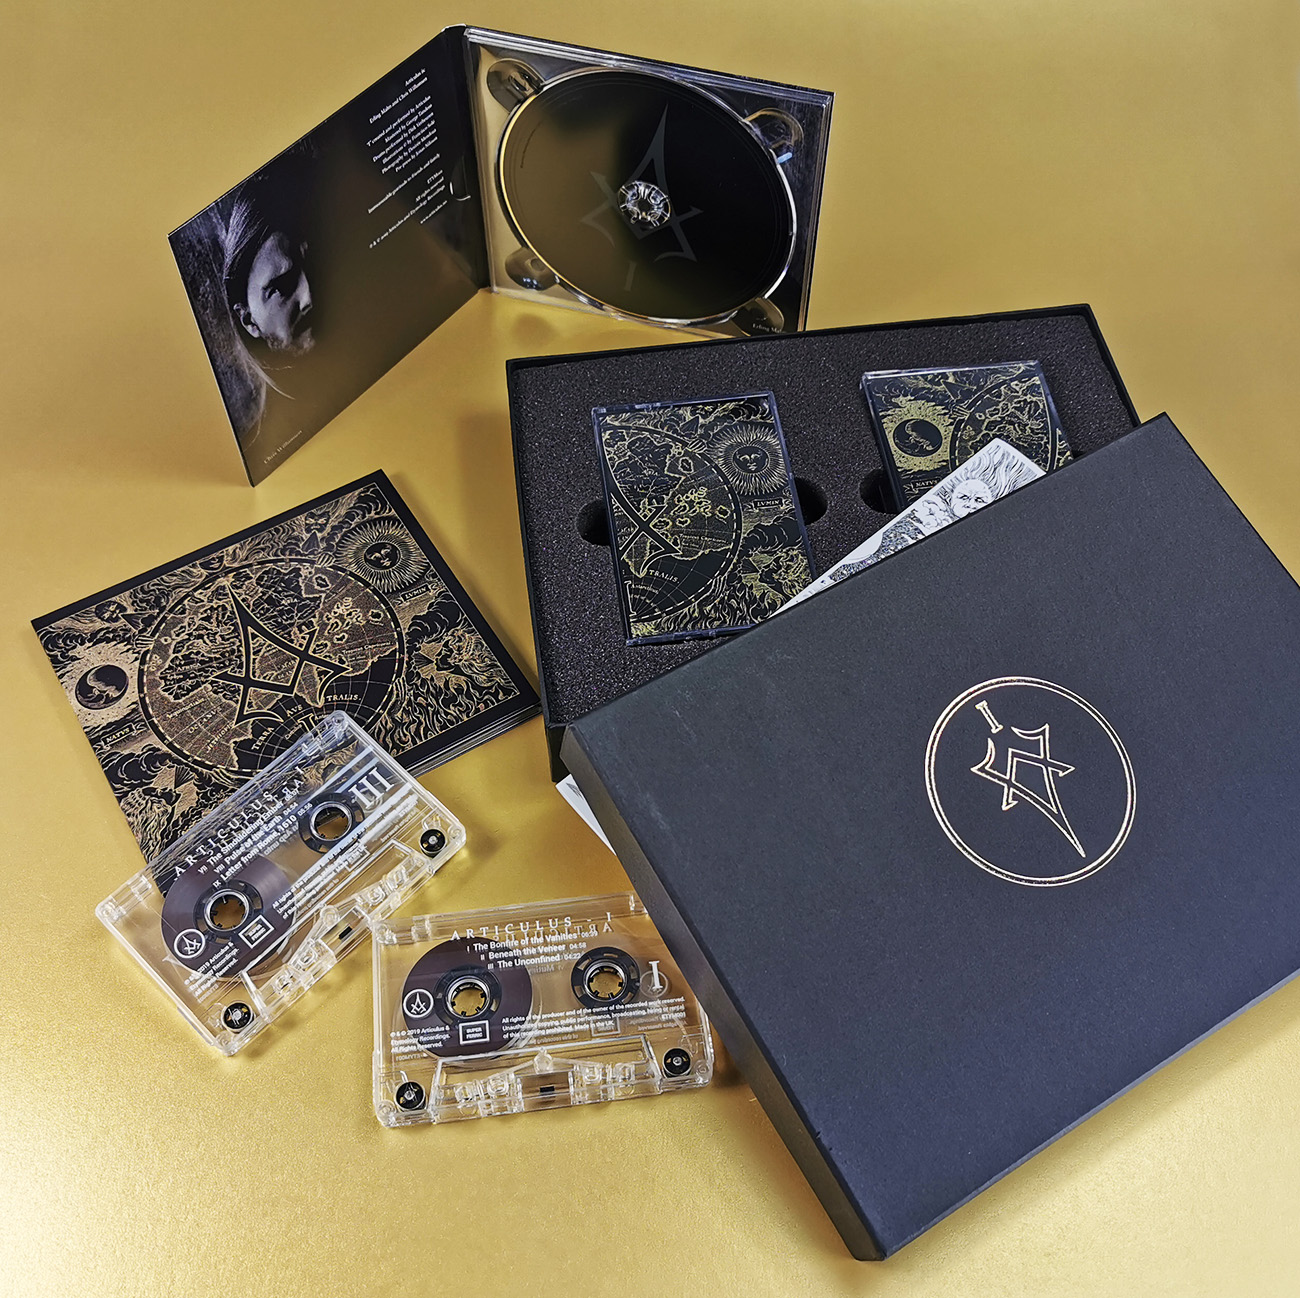 CD digipaks and matching twin cassette tapes in presentation boxes with gold foil printed lids